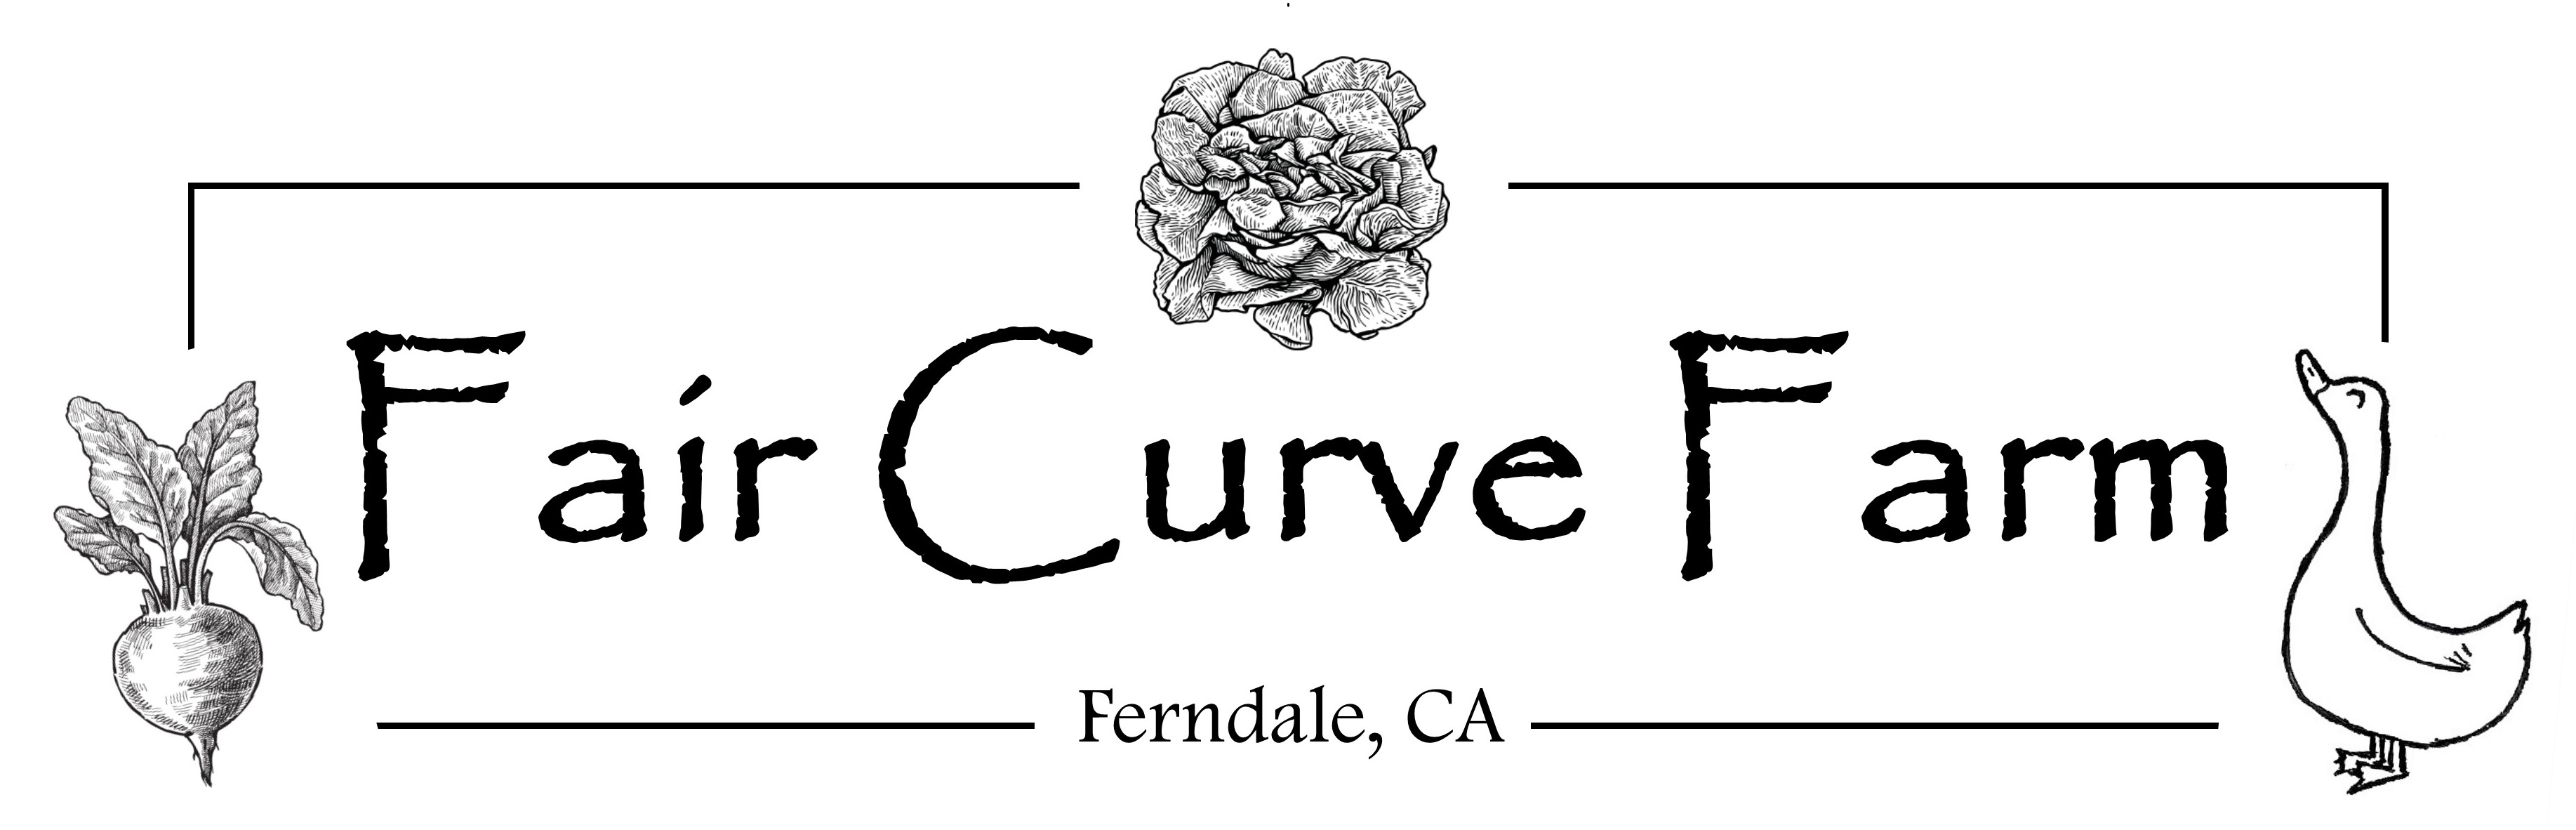 Fair Curve Farm